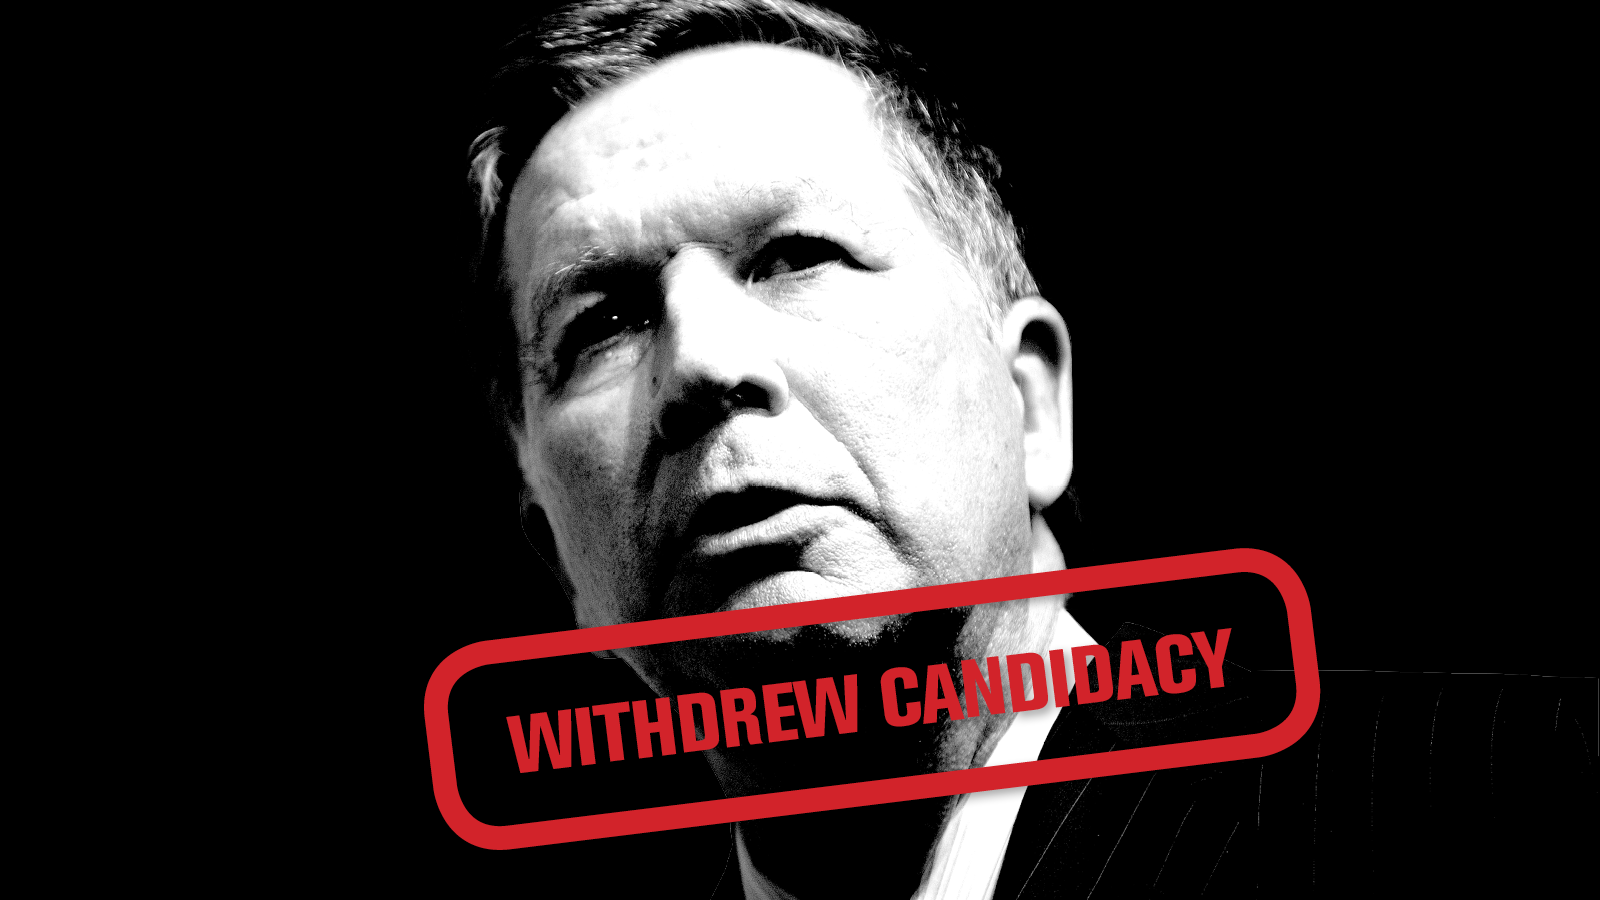 John Kasich: Opposed Marriage Equality, Same-Sex Adoption